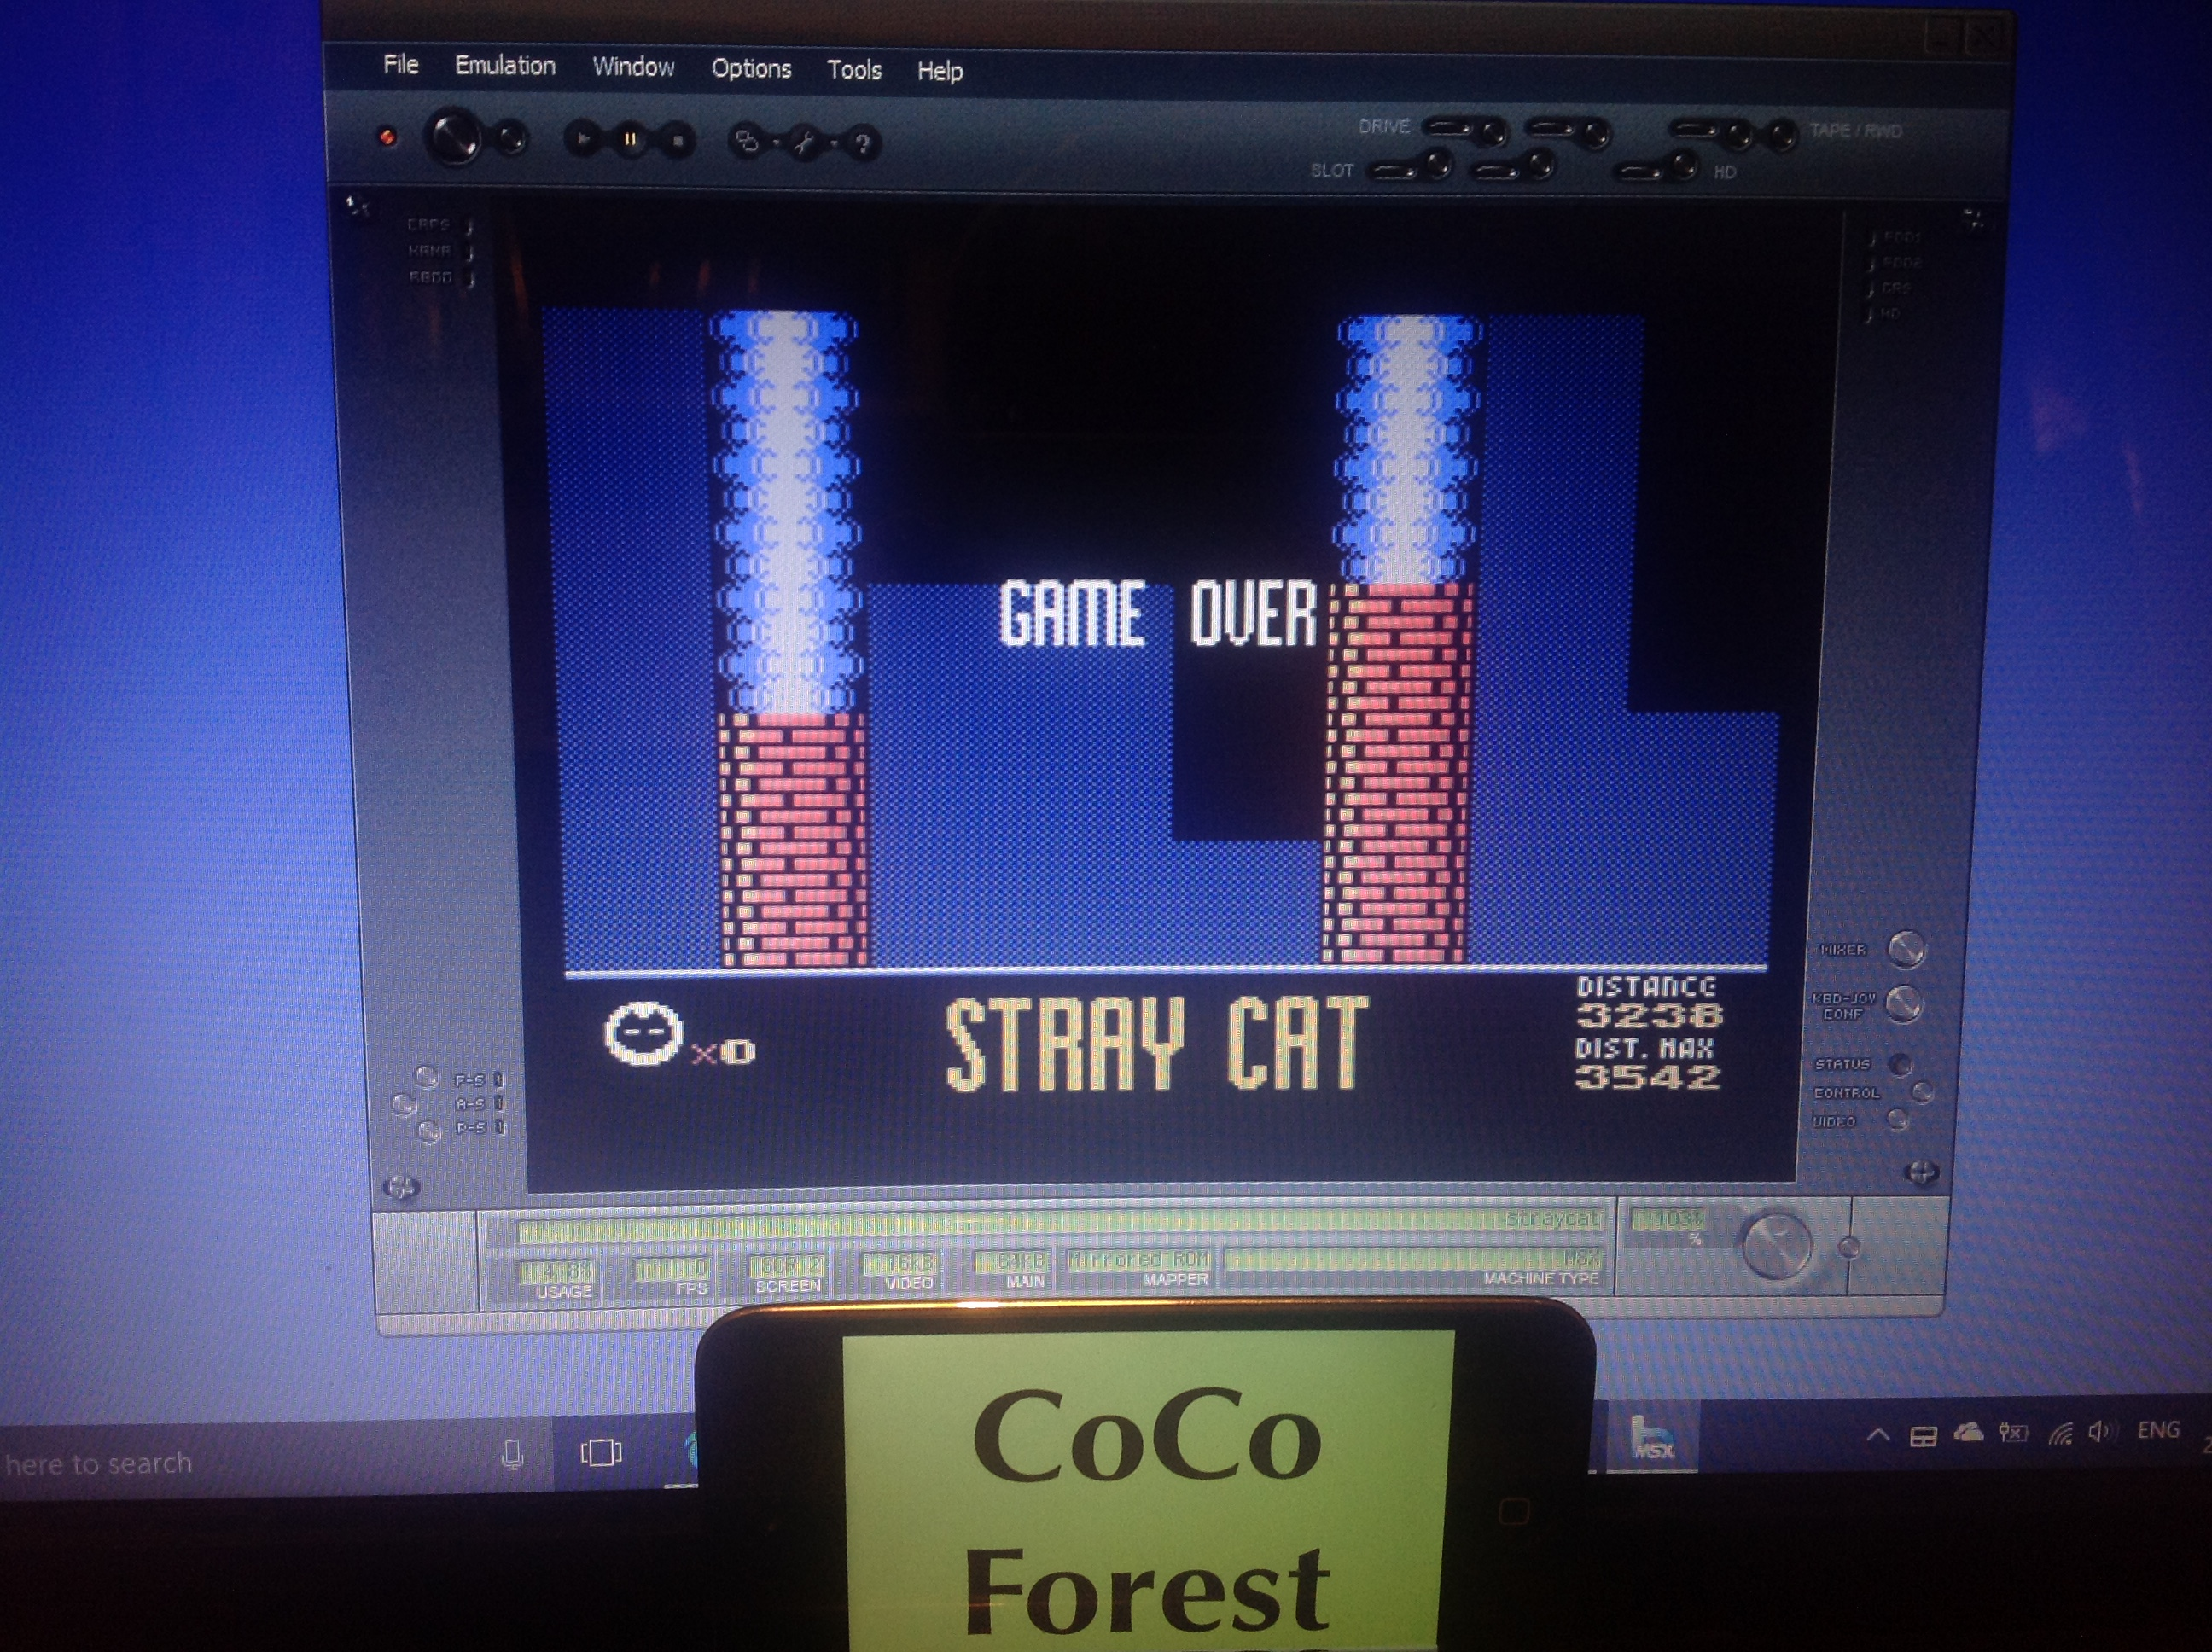 CoCoForest: Stray Cat (MSX Emulated) 3,542 points on 2018-01-26 12:21:46